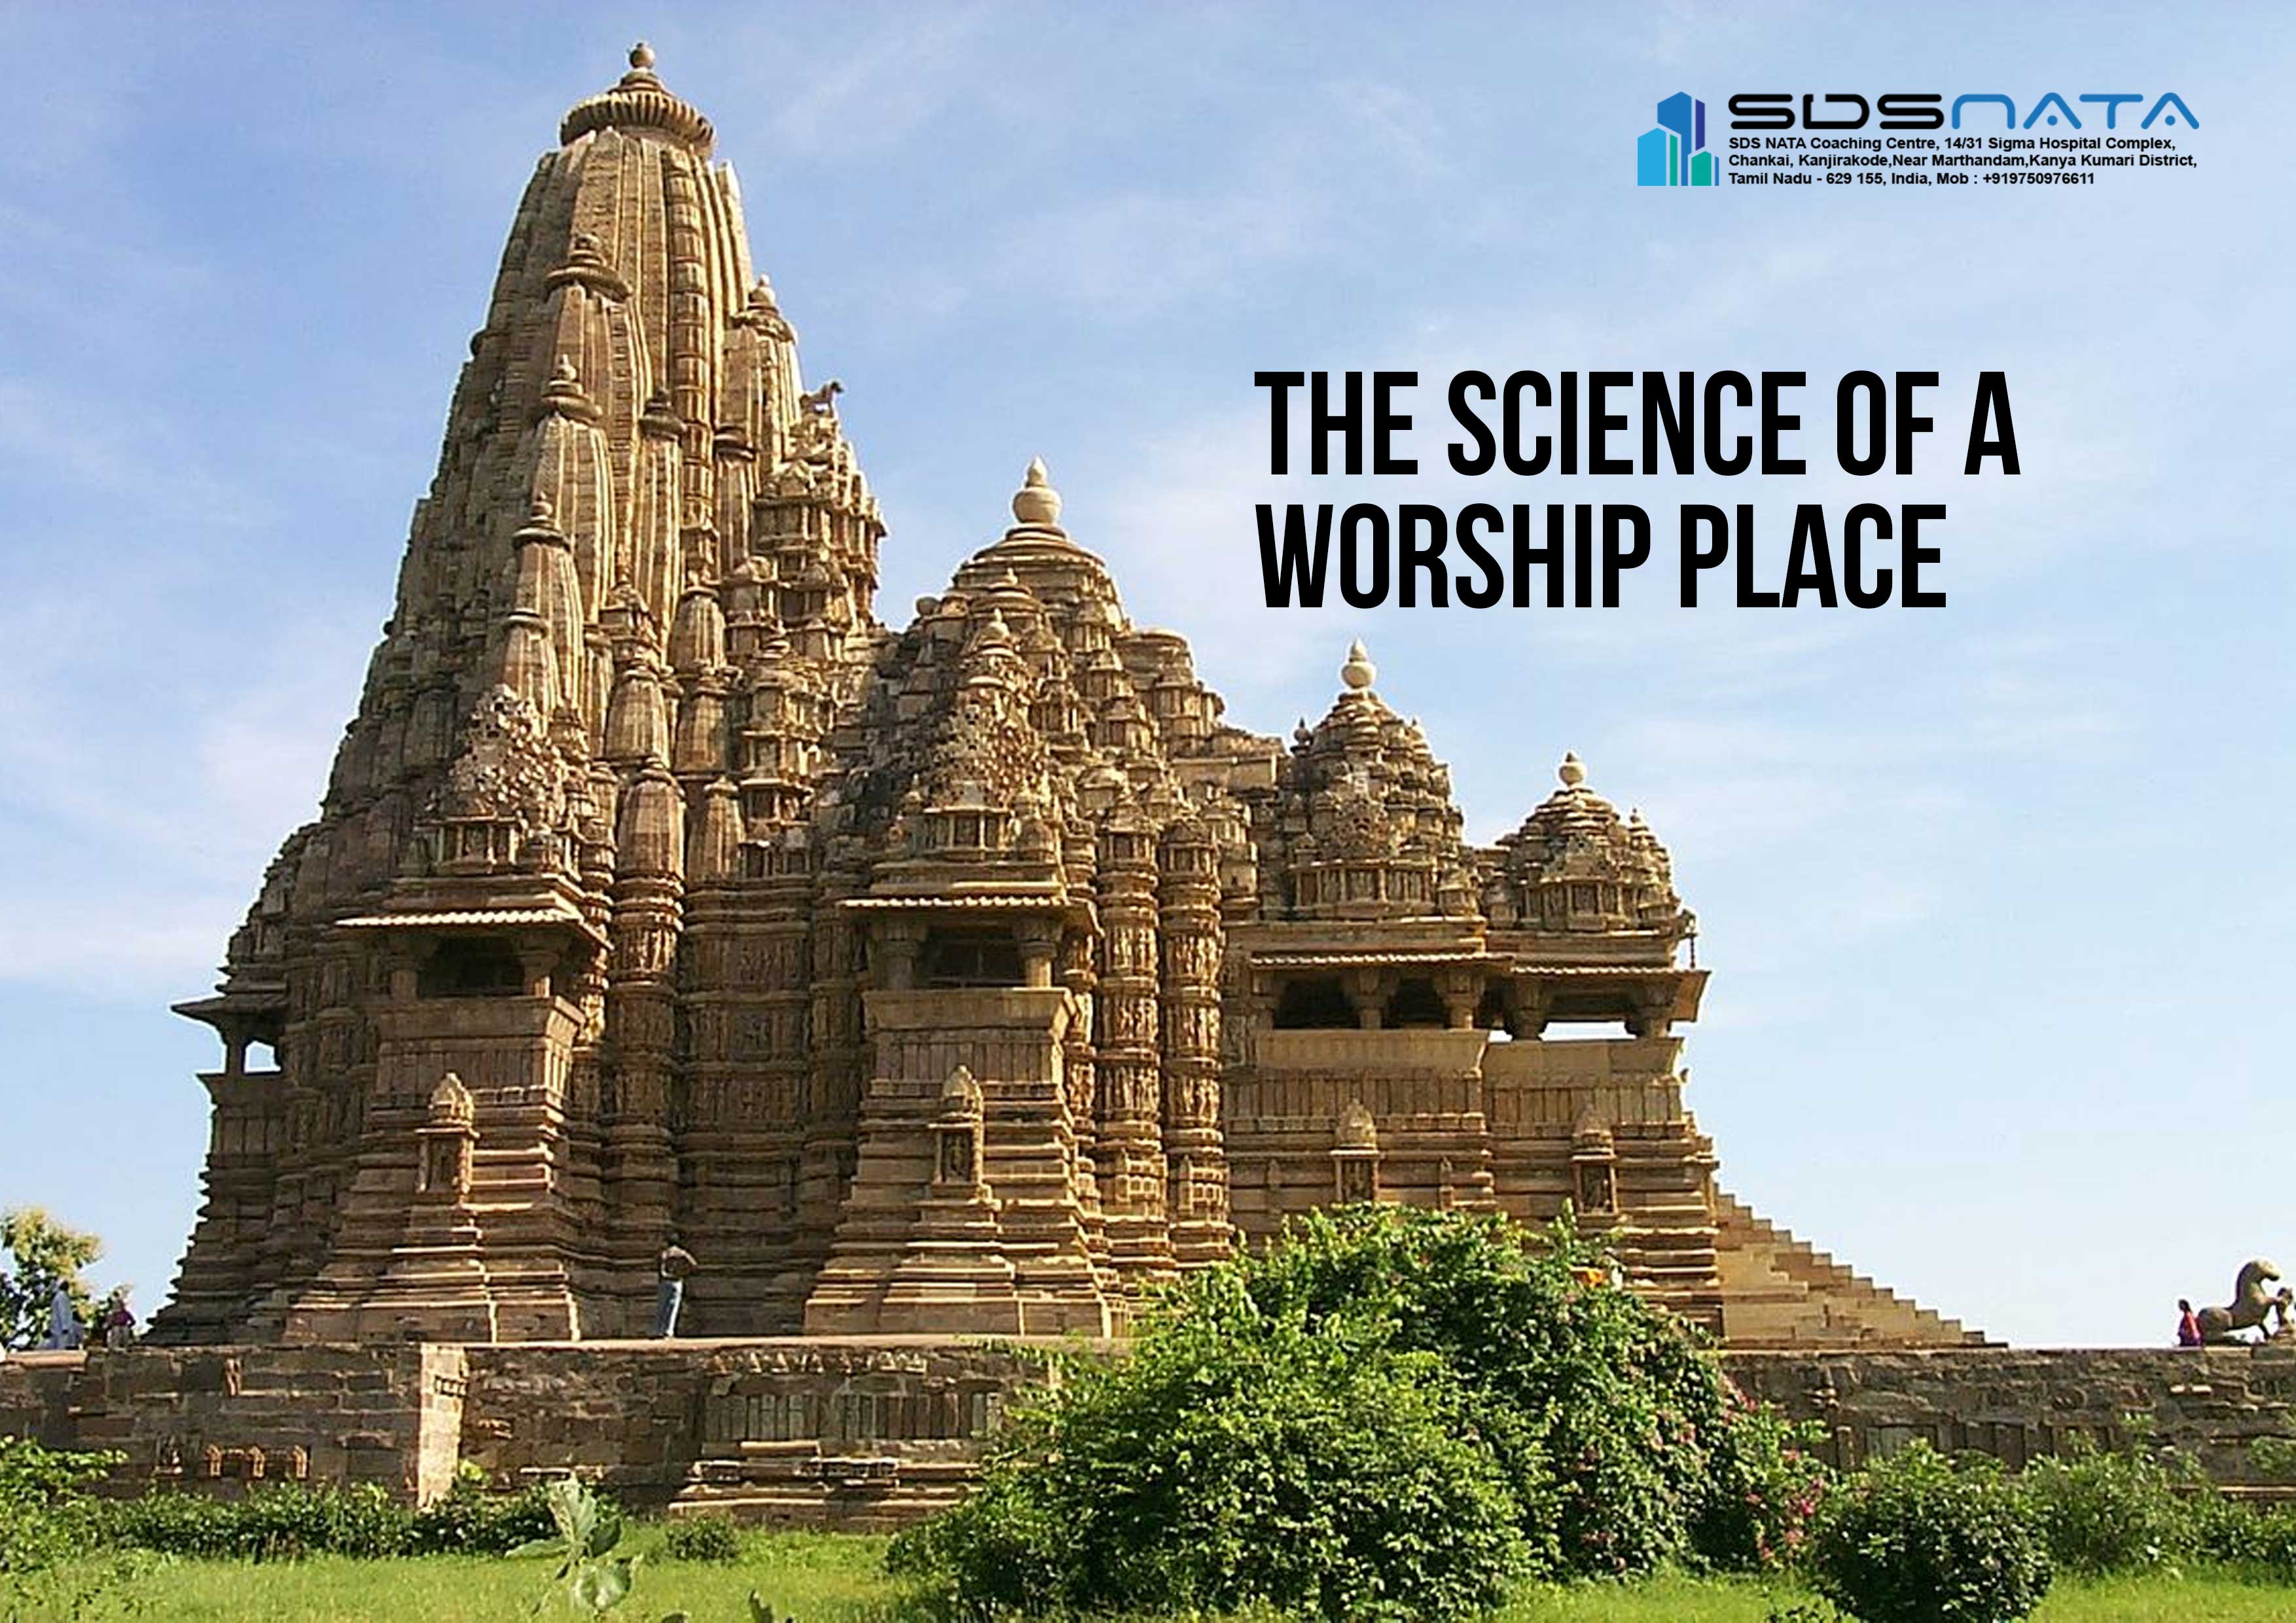 The Science of A Worship Place